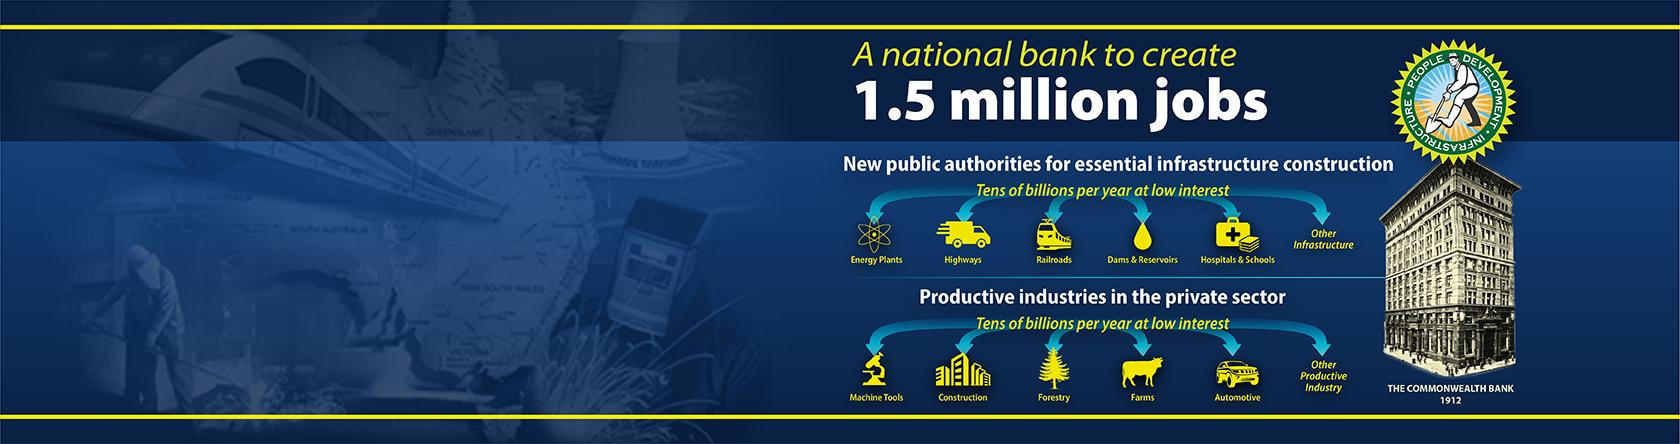 Sign Petition for a National Bank to create over 1.5 million jobs